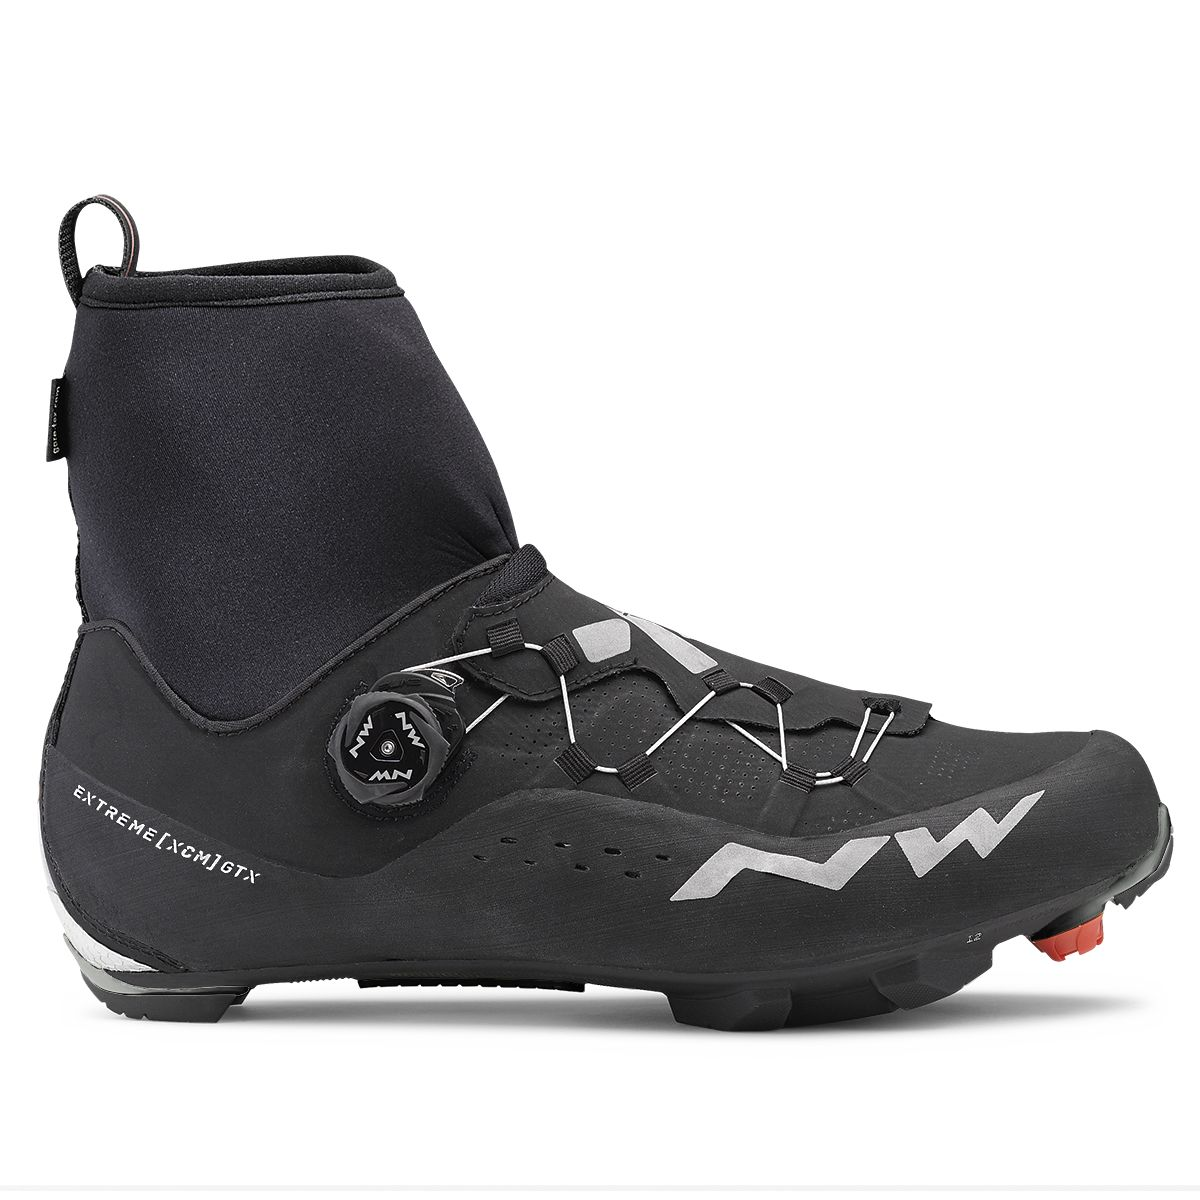 EXTREME XCM 2 GTX MTB winter shoes